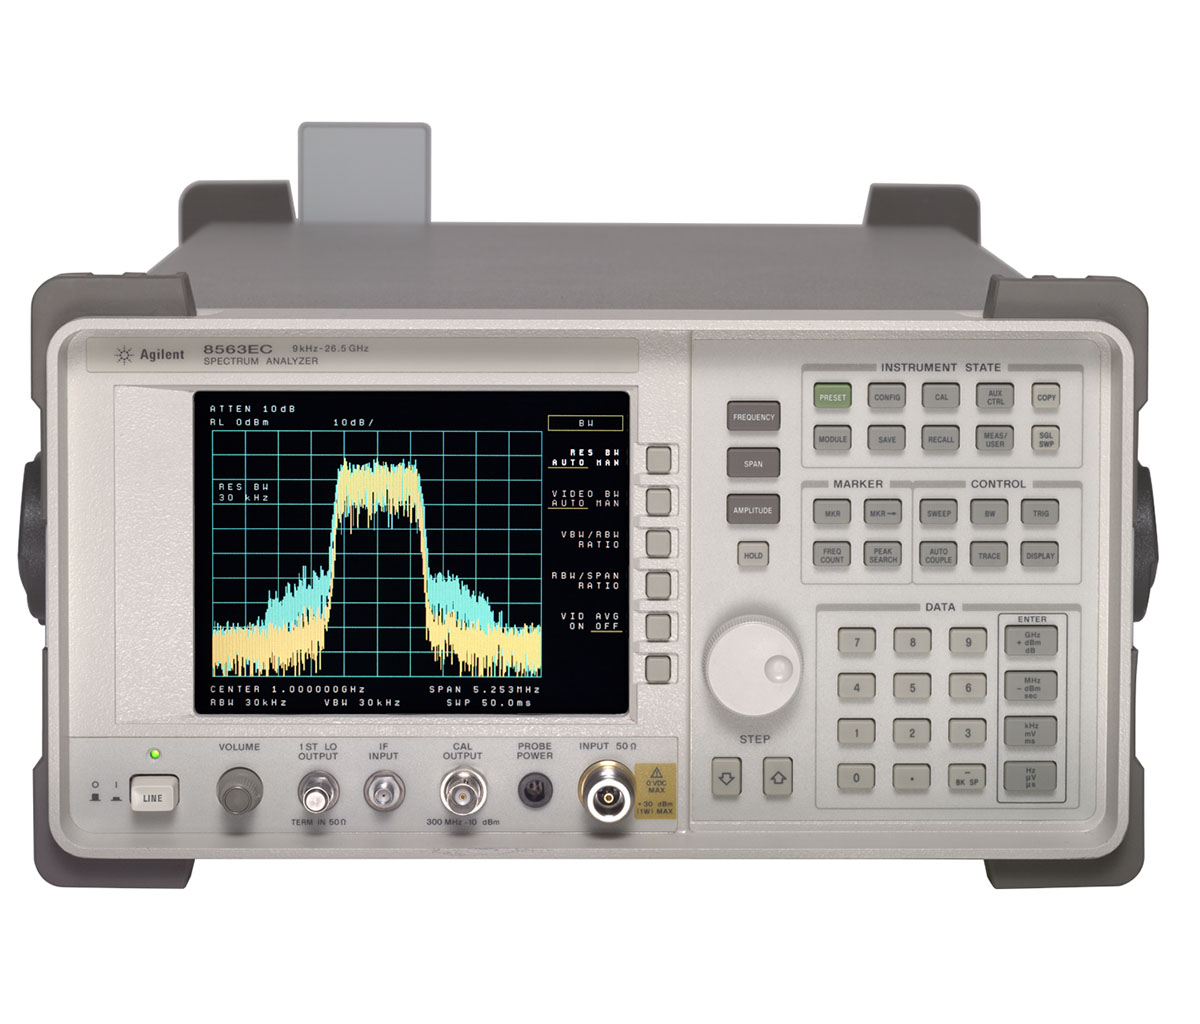 Keysight (Formerly Agilent) 8563EC for Lease, Rent or Buy | TRS-RenTelco